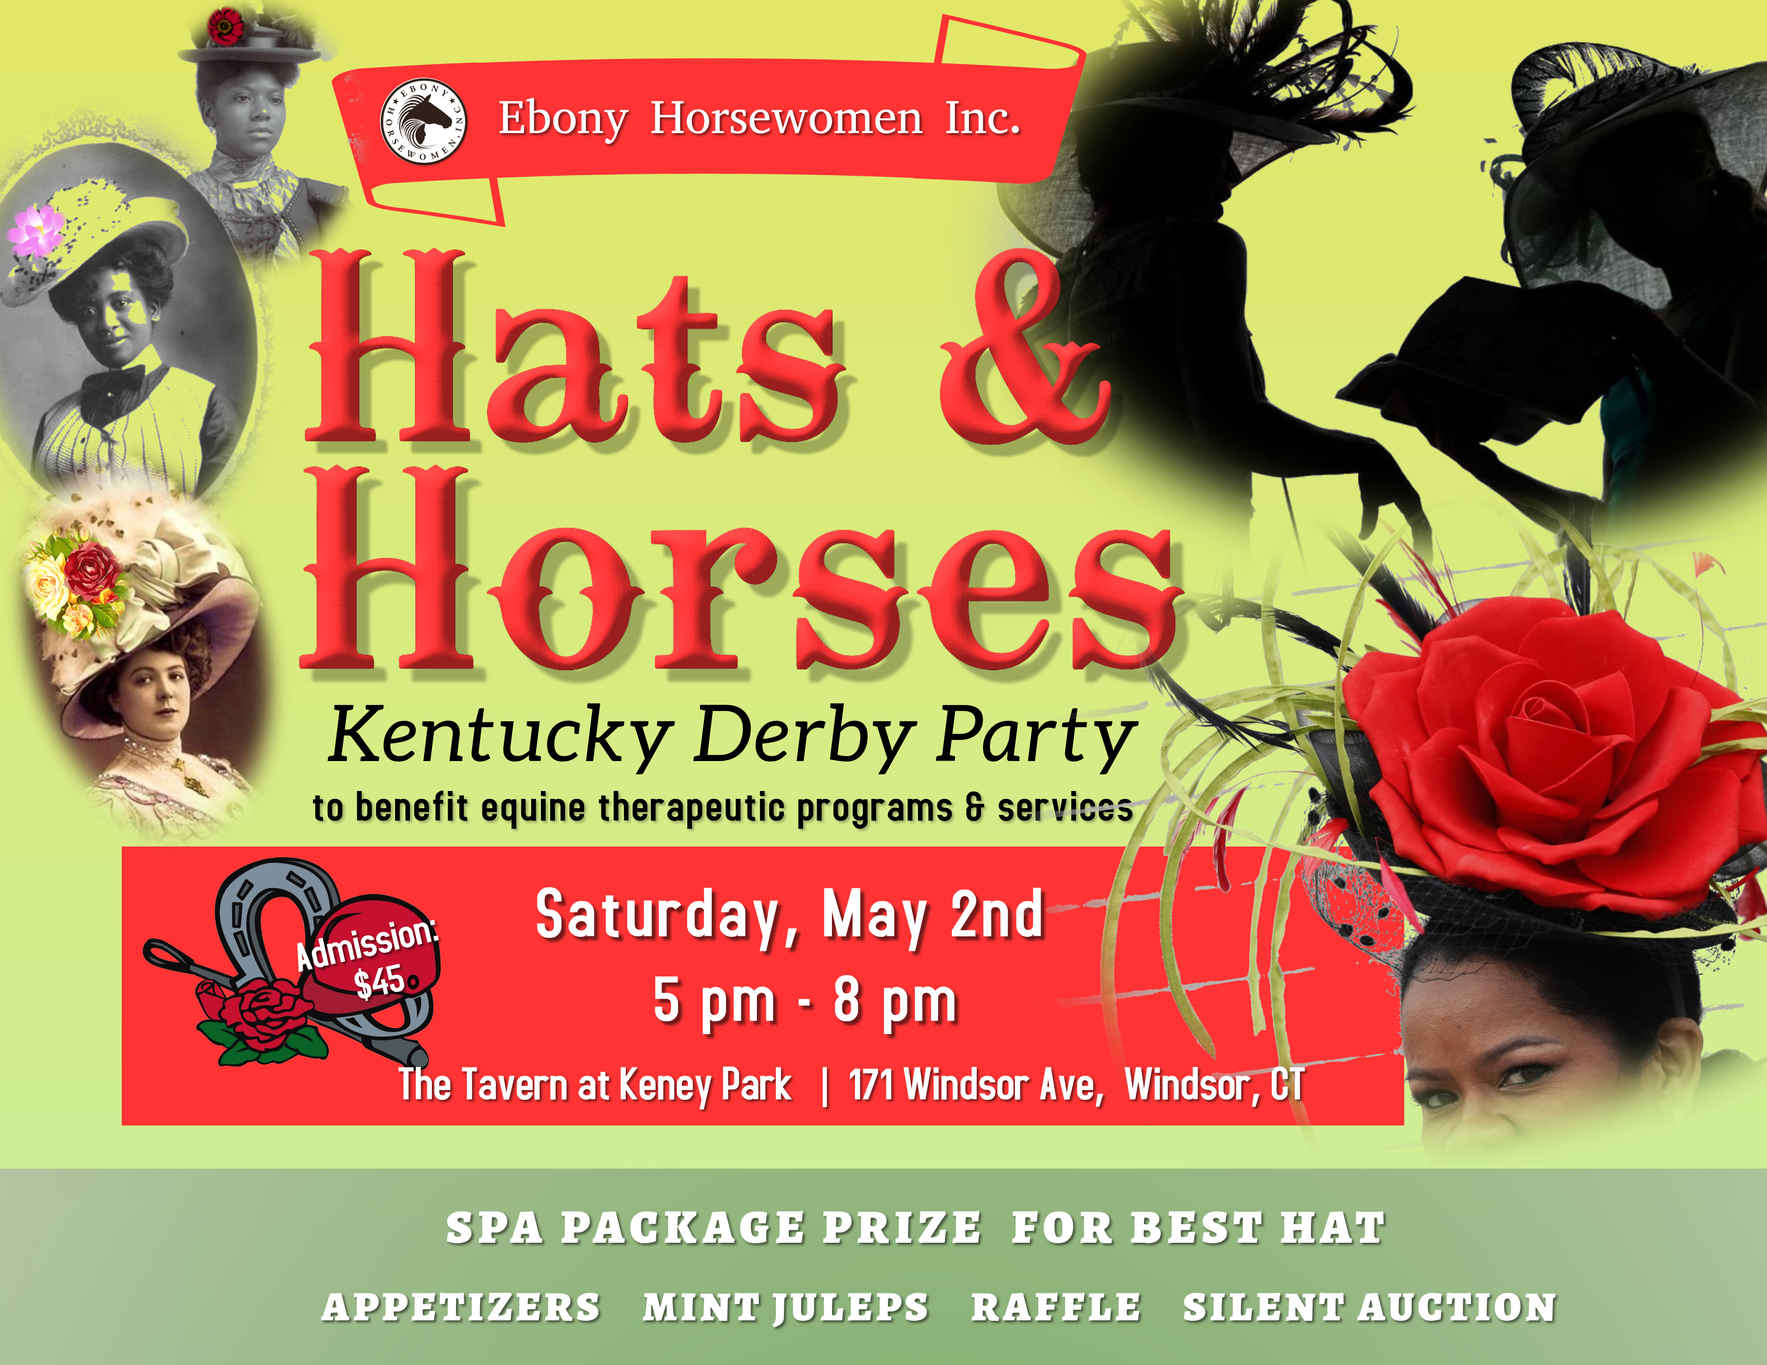 Hats & Horses Kentucky Derby Party image